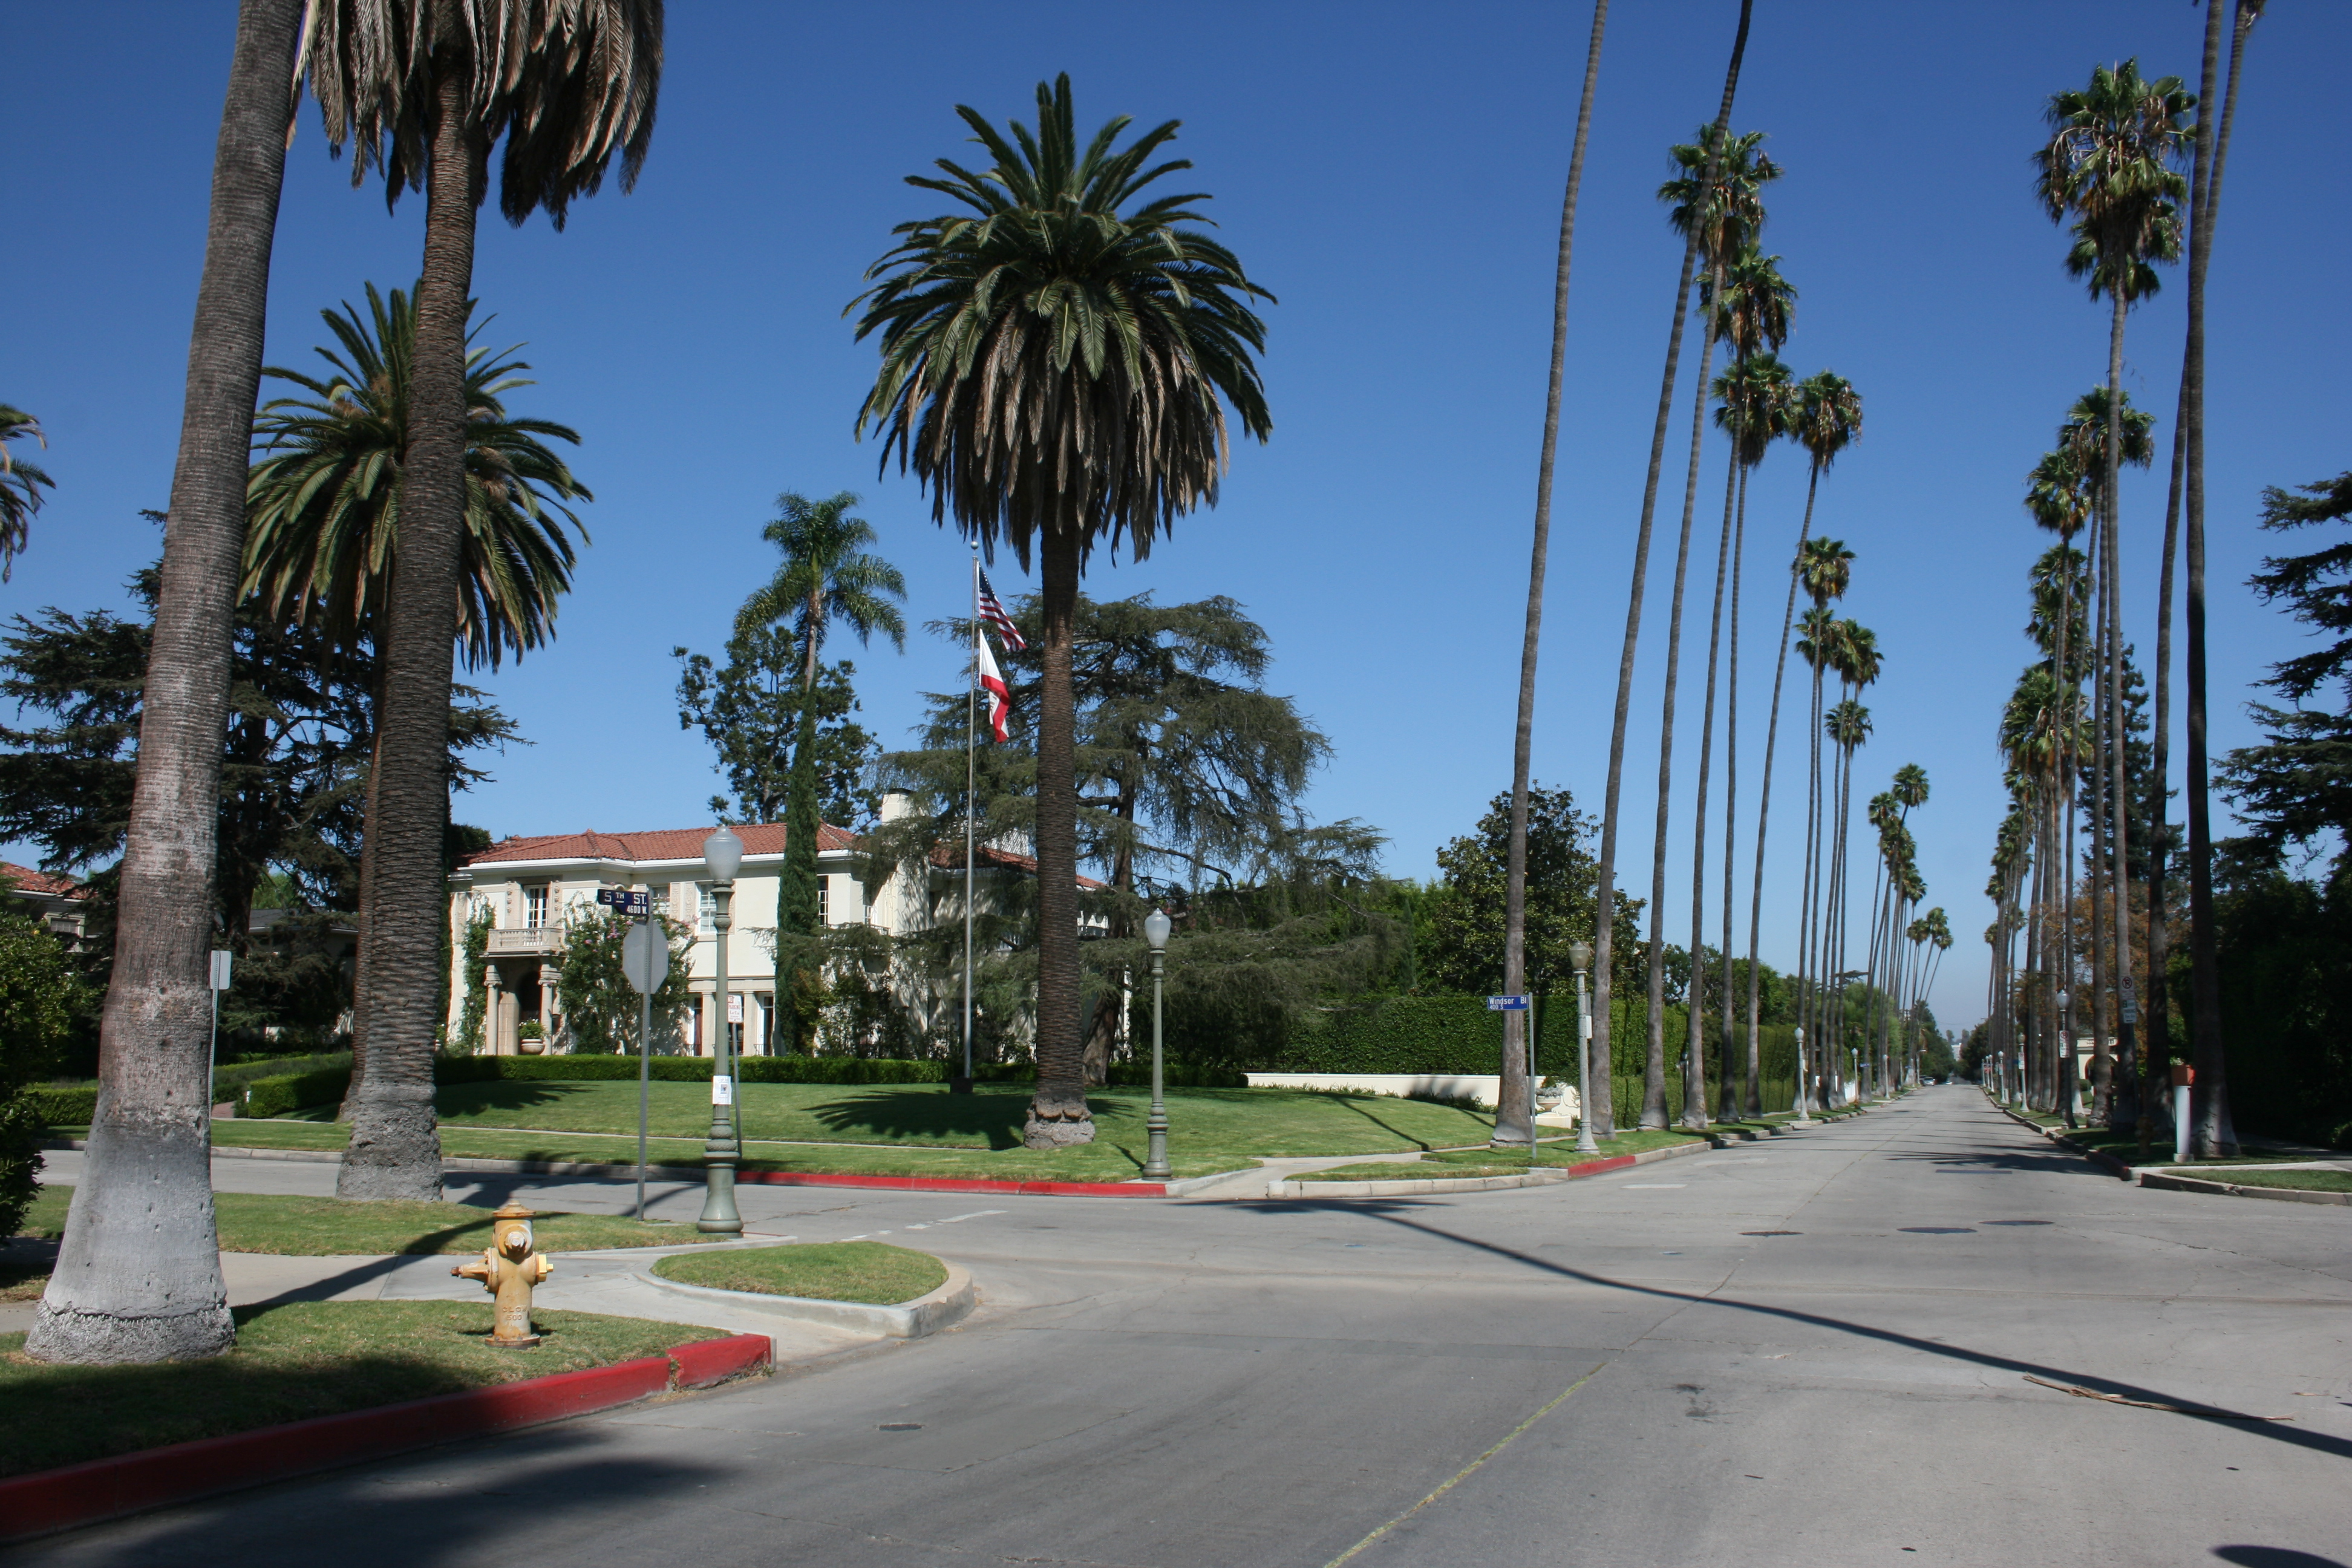 Windsor Square, with a skyline of palm trees